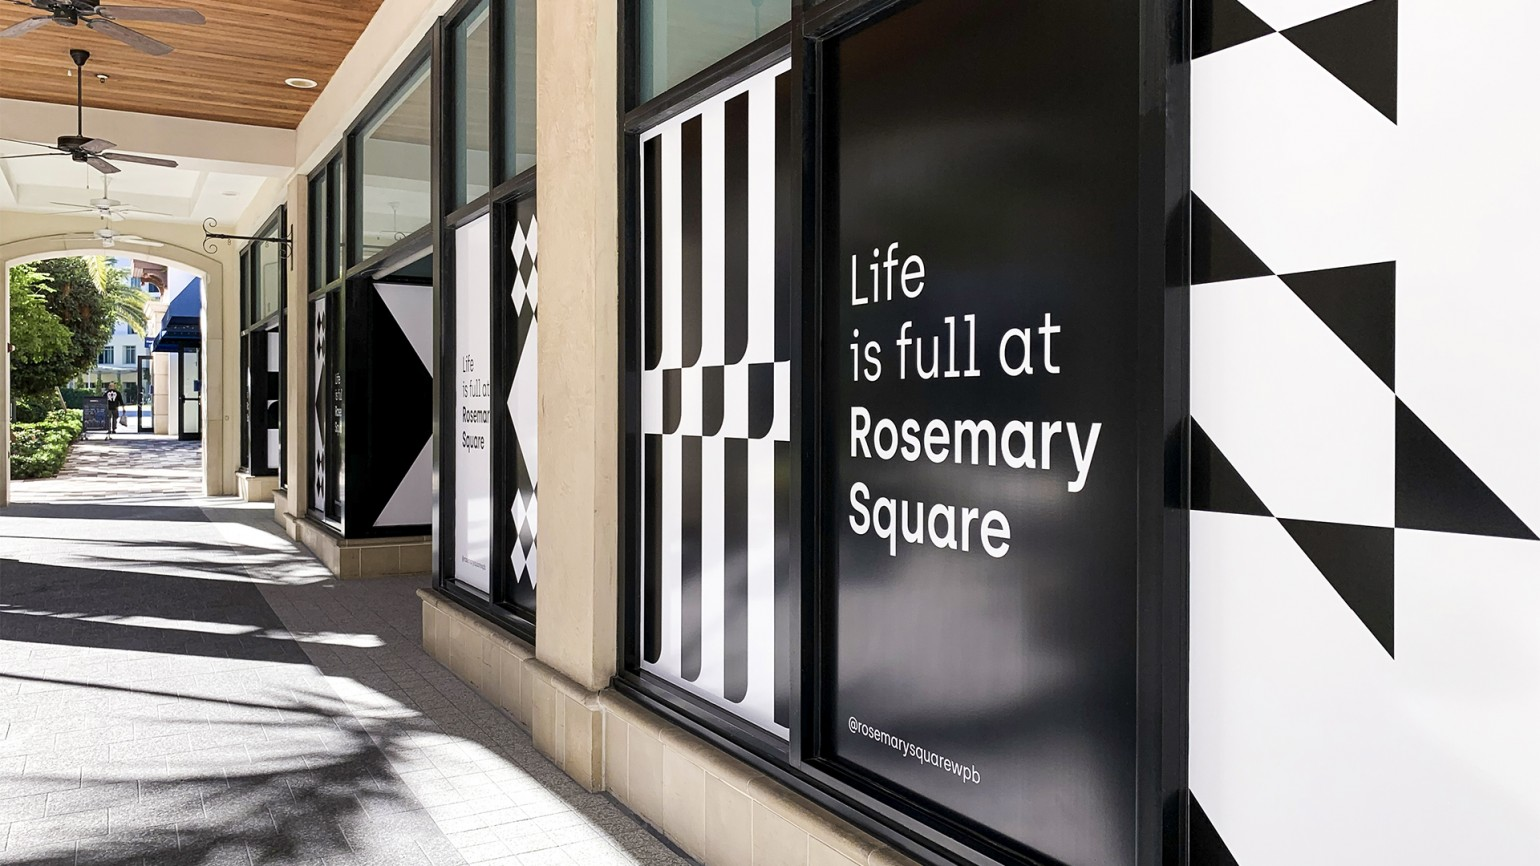 Rosemary Square